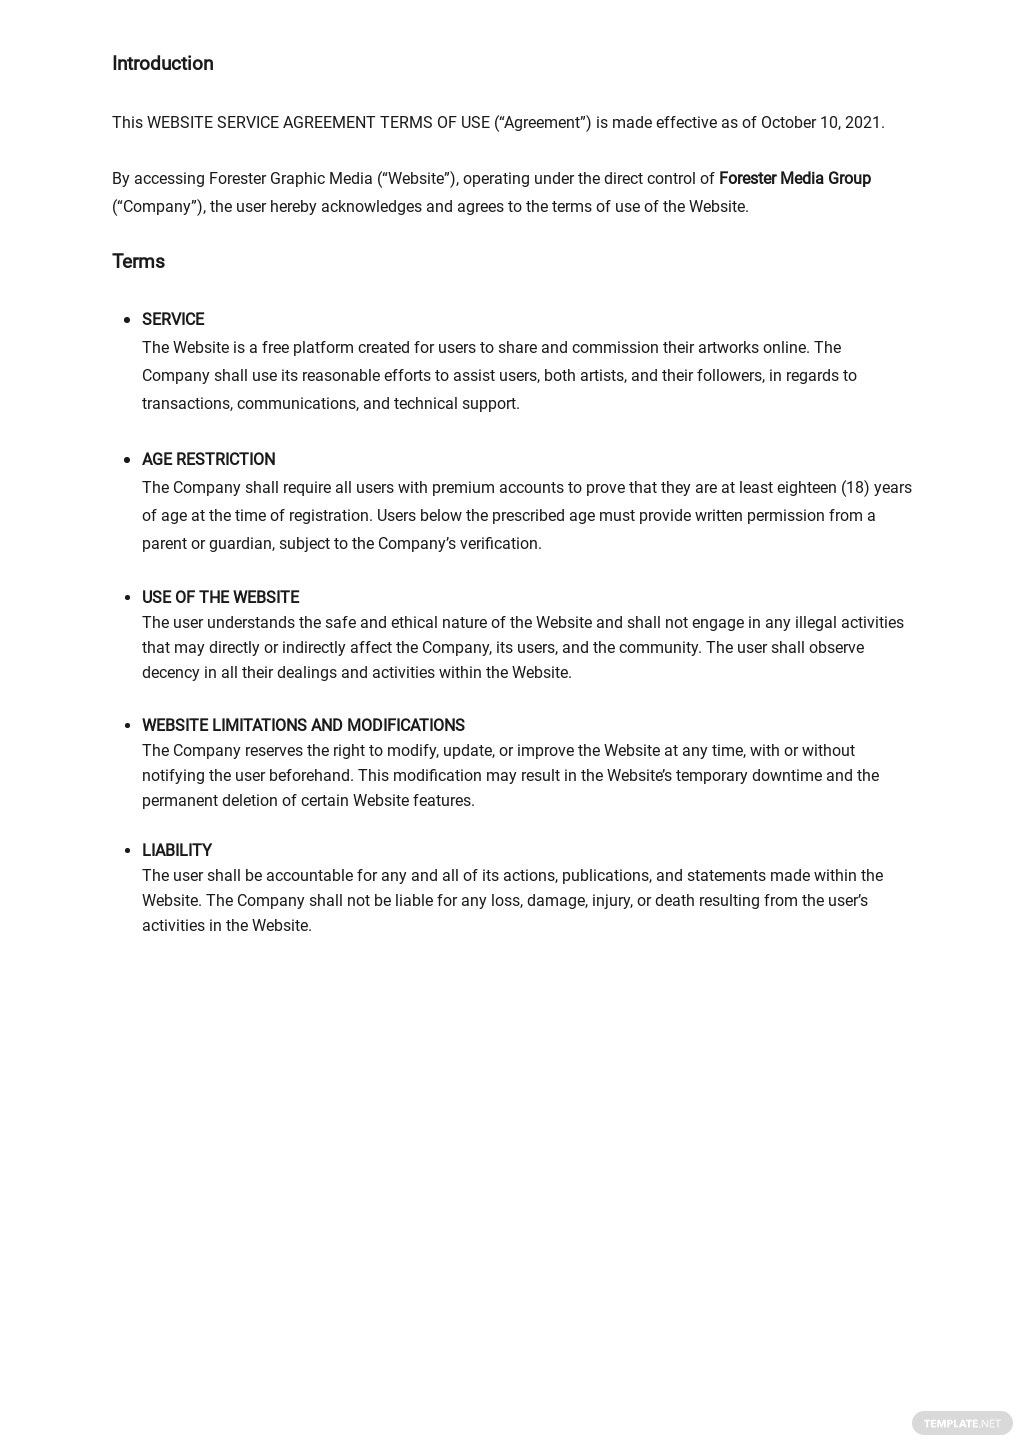 Website Service Agreement Terms of Use Template 1.jpe